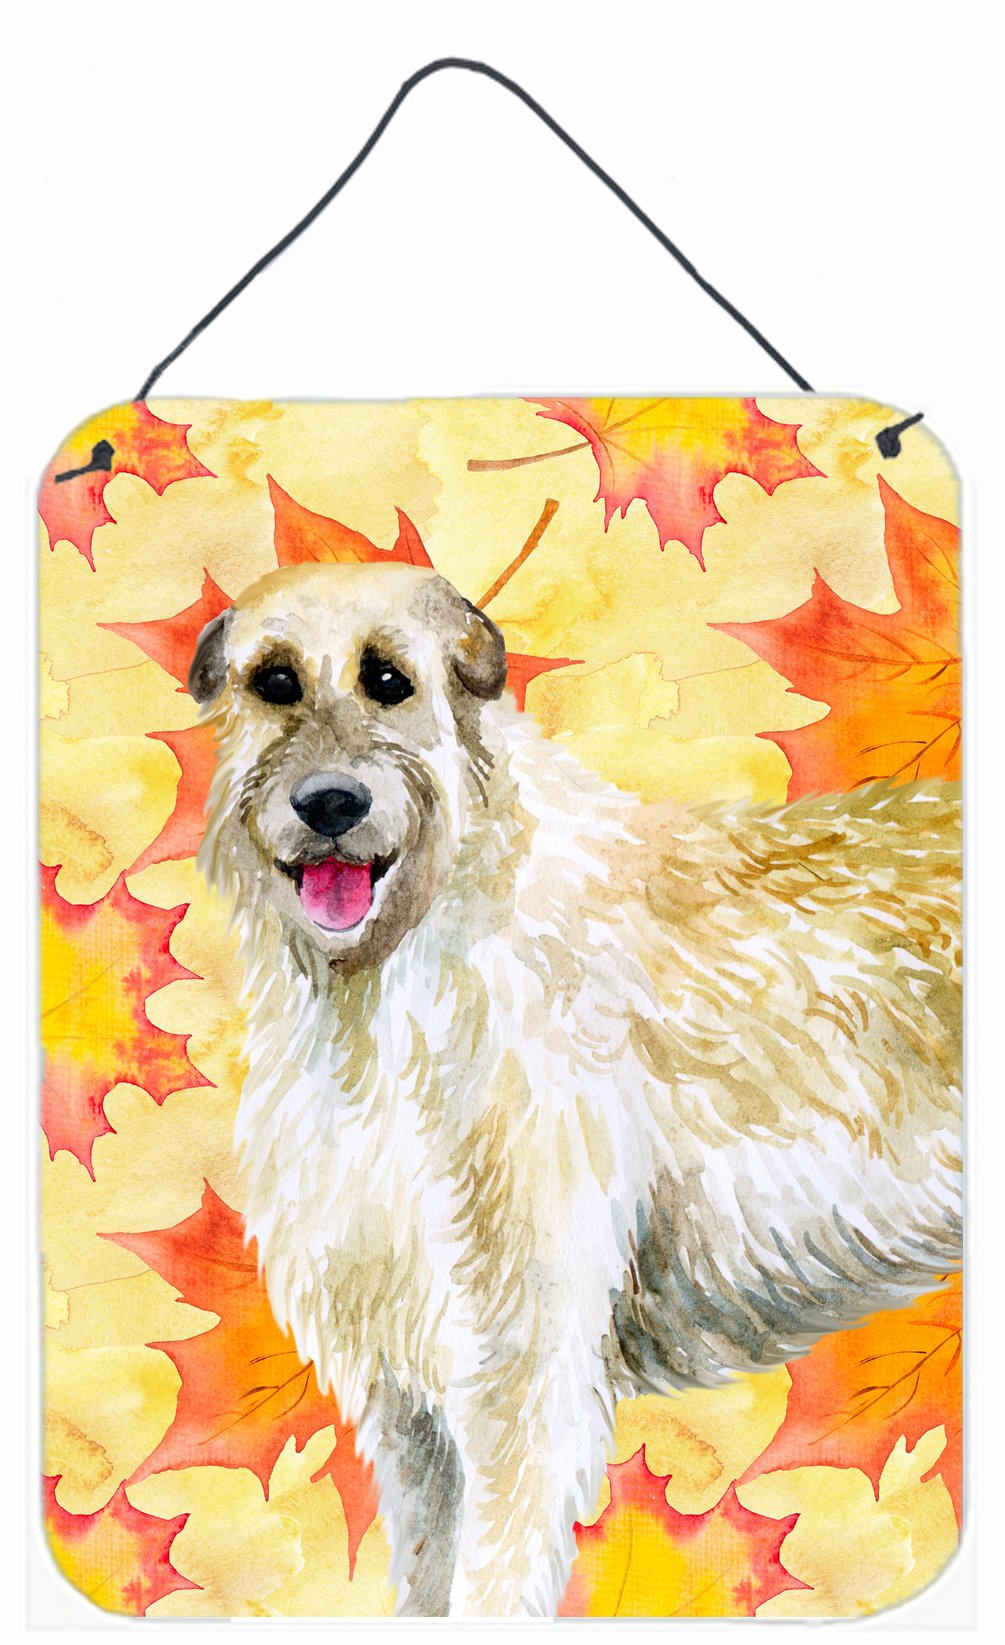 Irish Wolfhound Fall Wall or Door Hanging Prints BB9931DS1216 by Caroline's Treasures